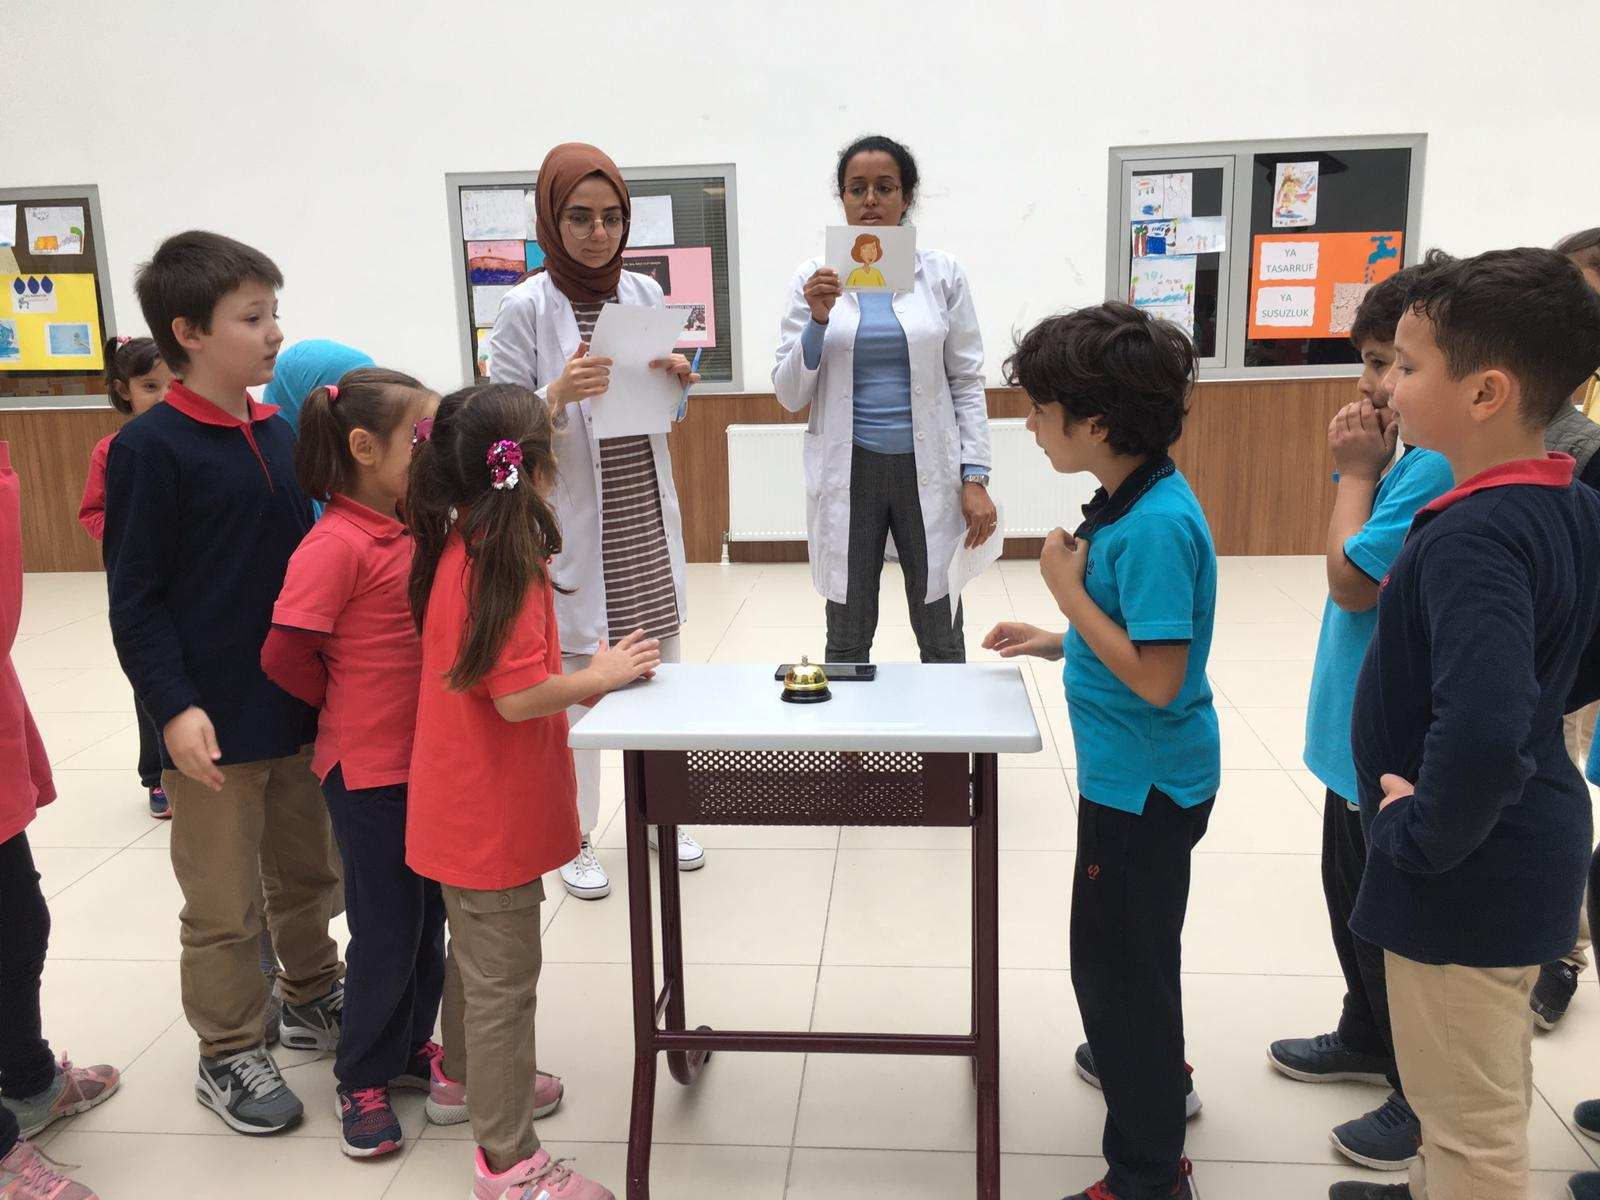 QUIZ SHOW WITH 3RD GRADERS